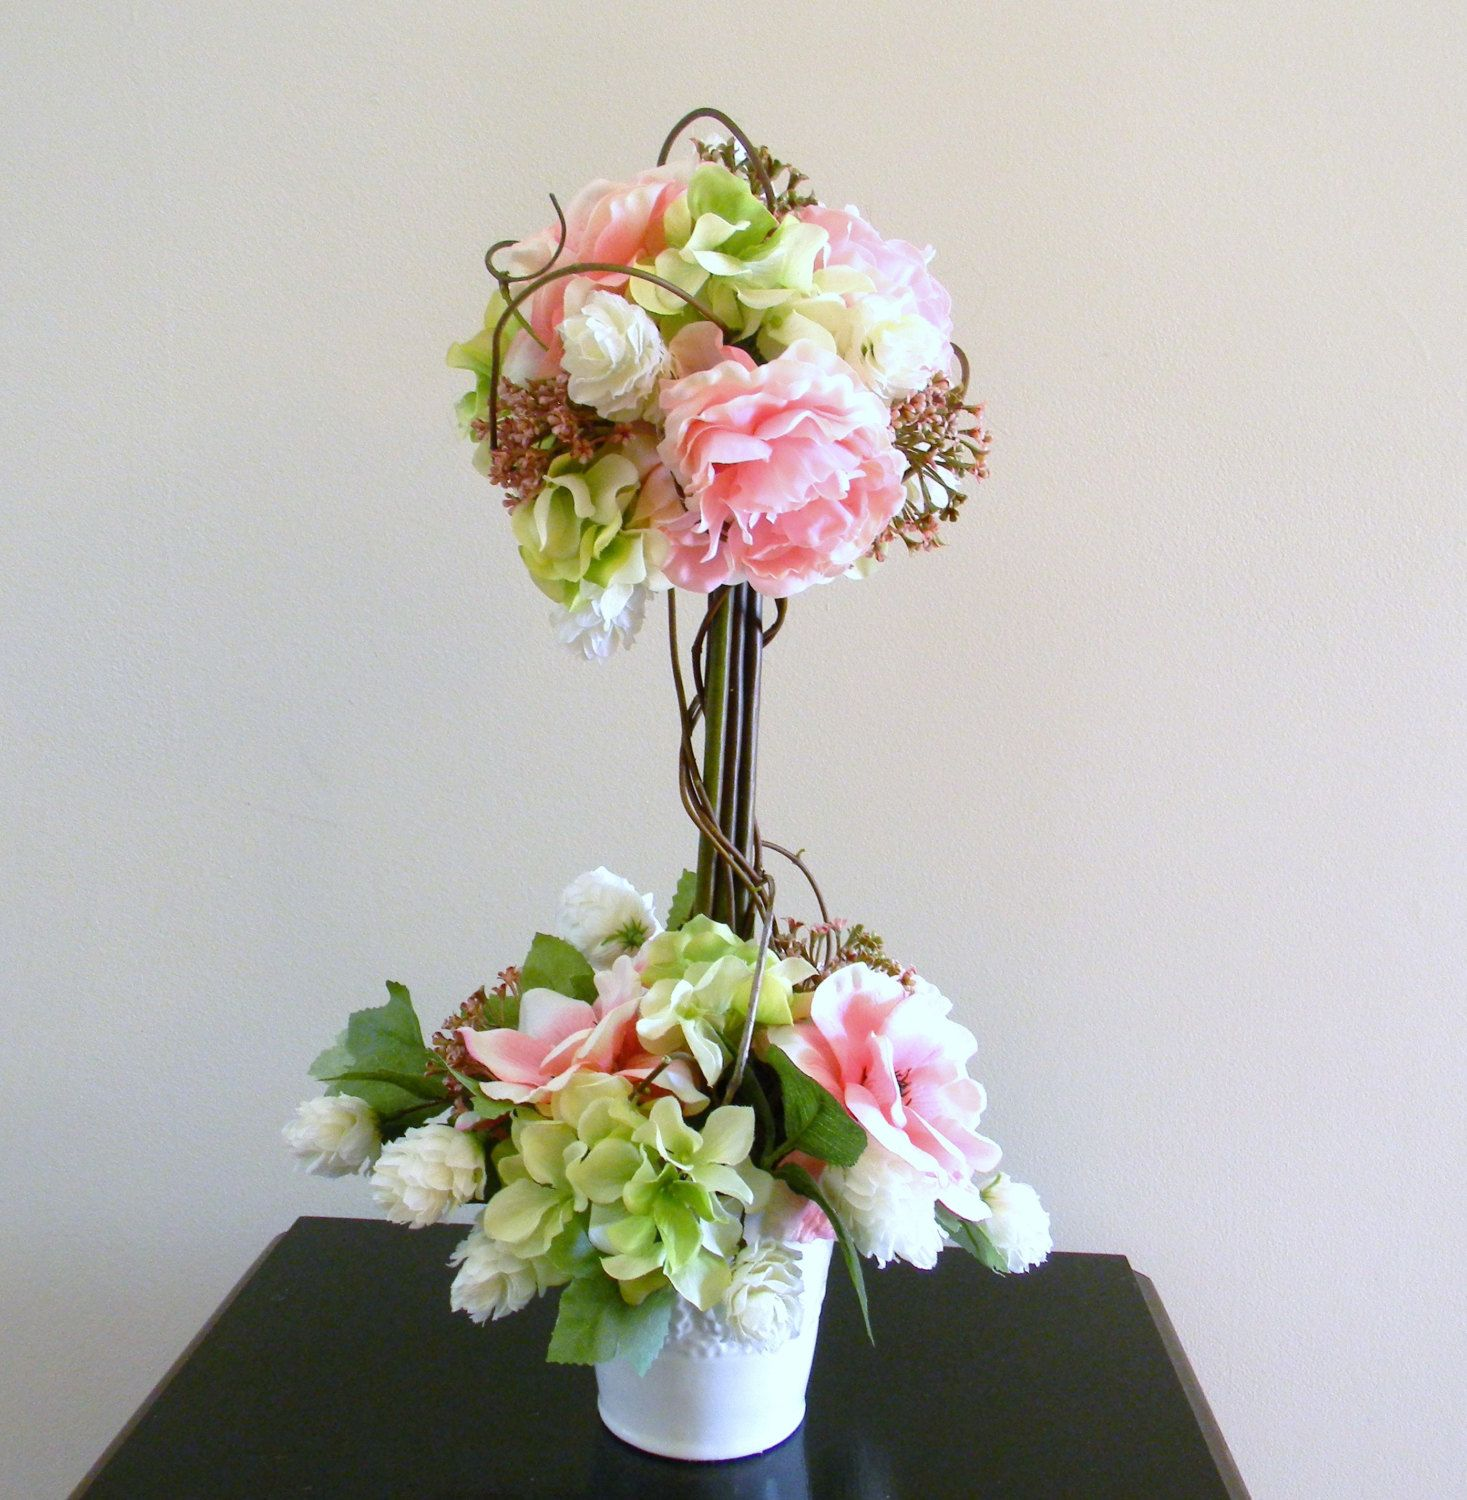 Flower Arrangements Ideas For Weddings: Topiary Centerpieces For Weddings